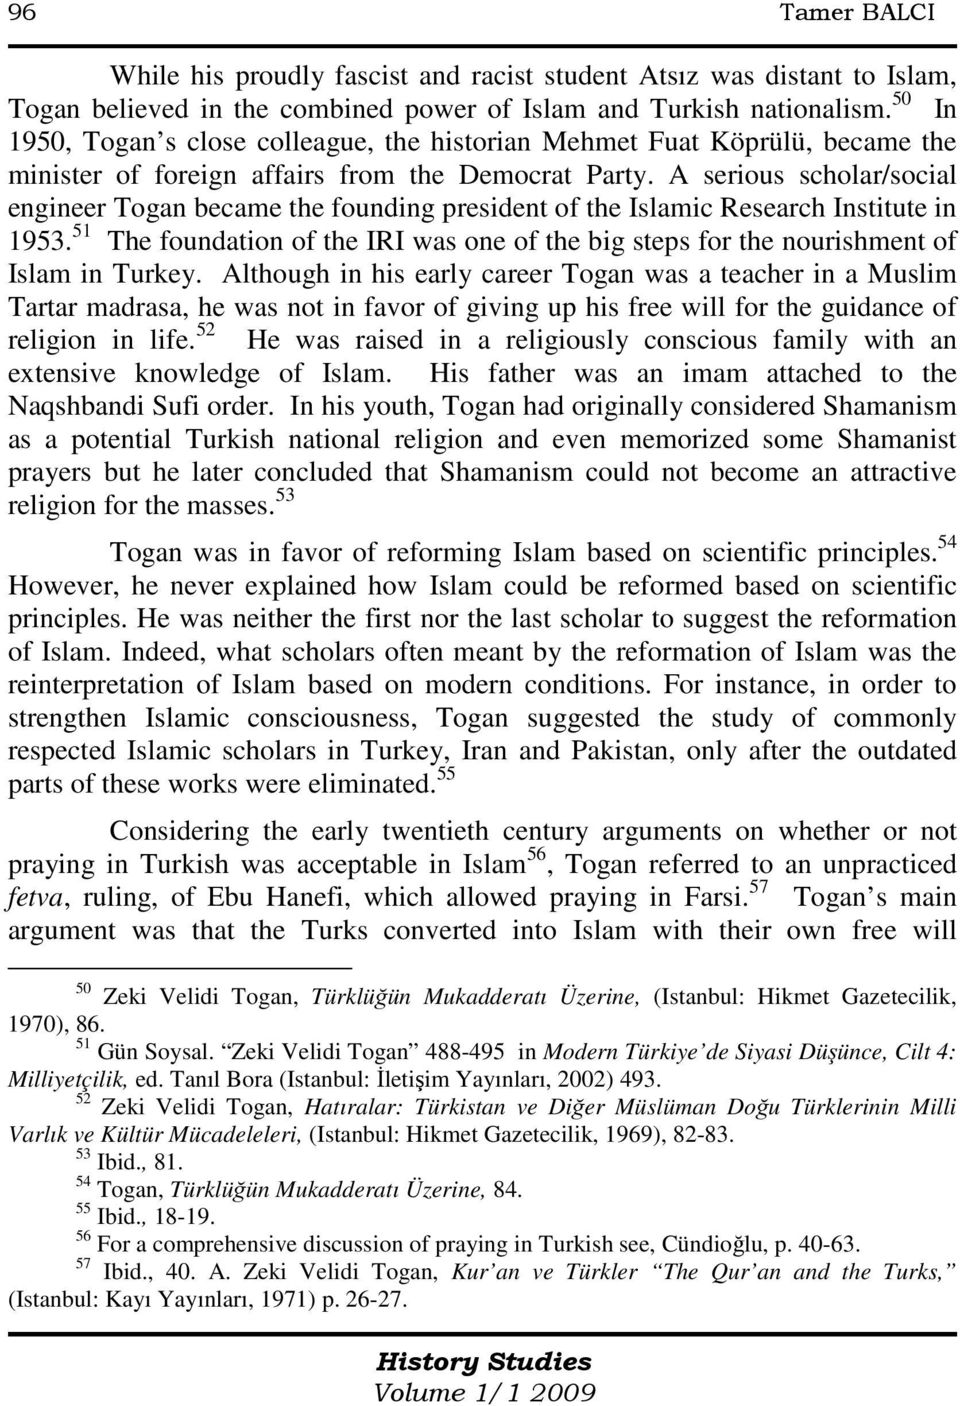 A serious scholar/social engineer Togan became the founding president of the Islamic Research Institute in 1953.